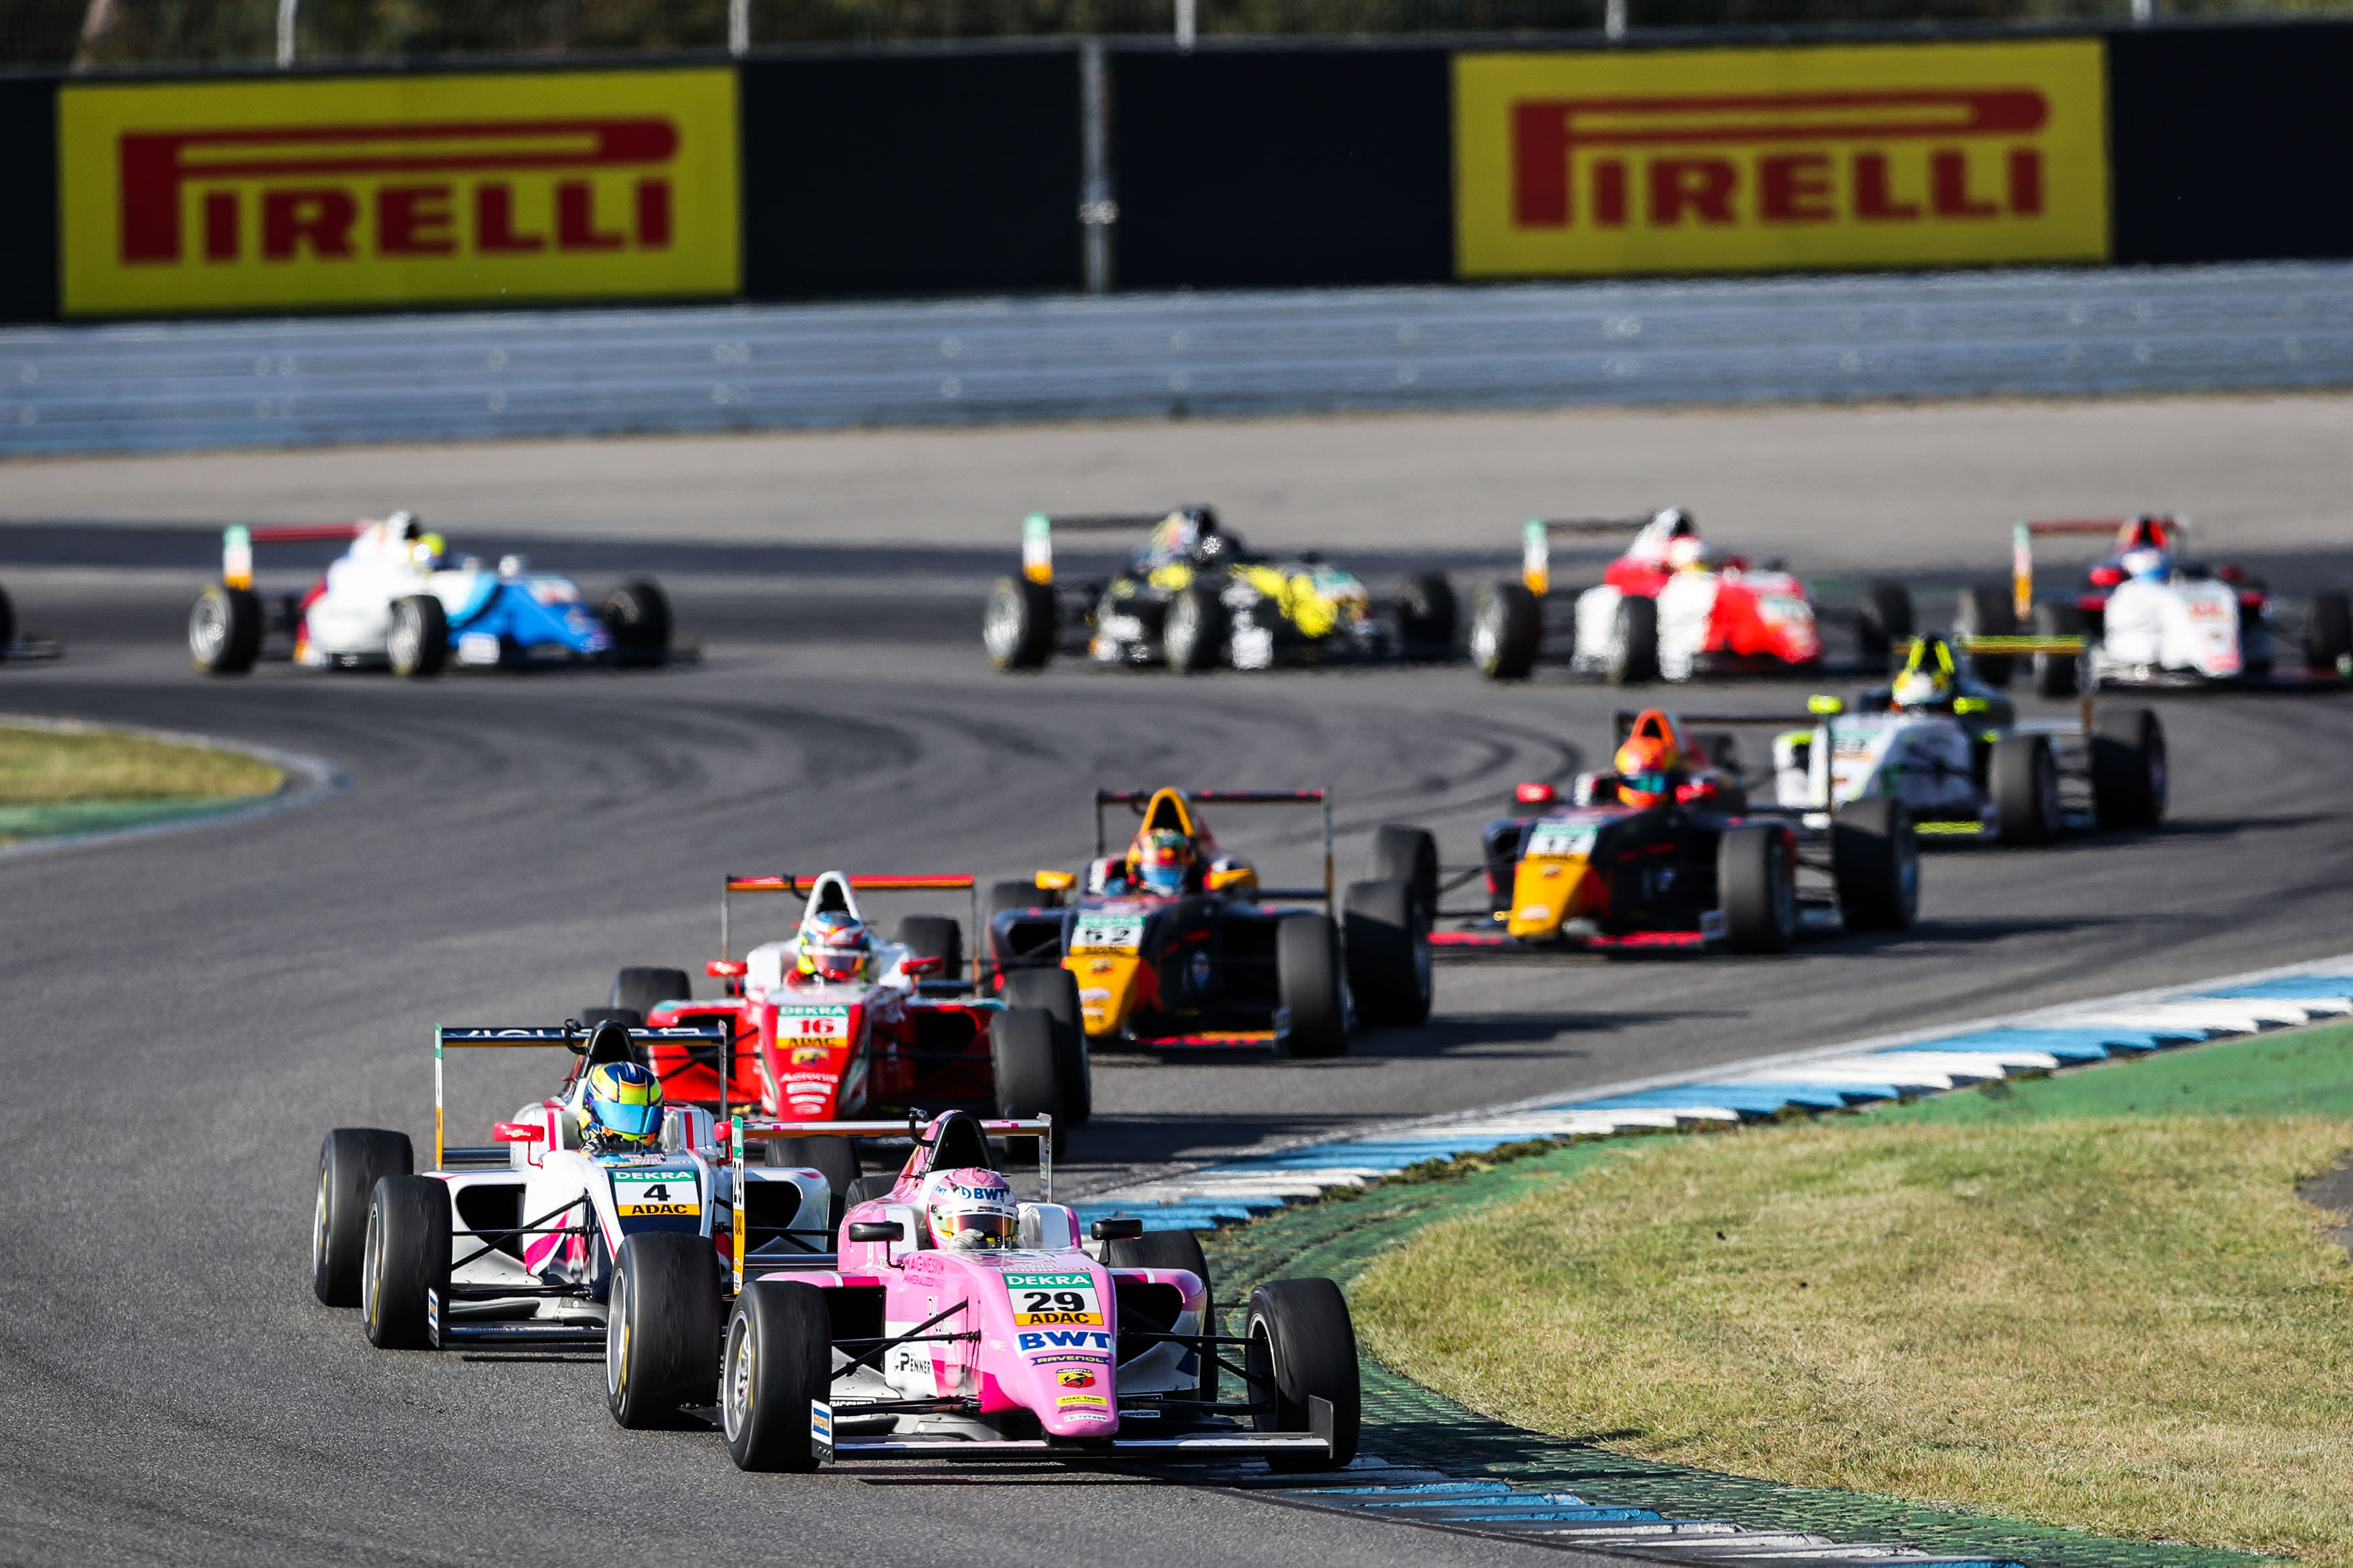 Schedule changes for ADAC Formula 4